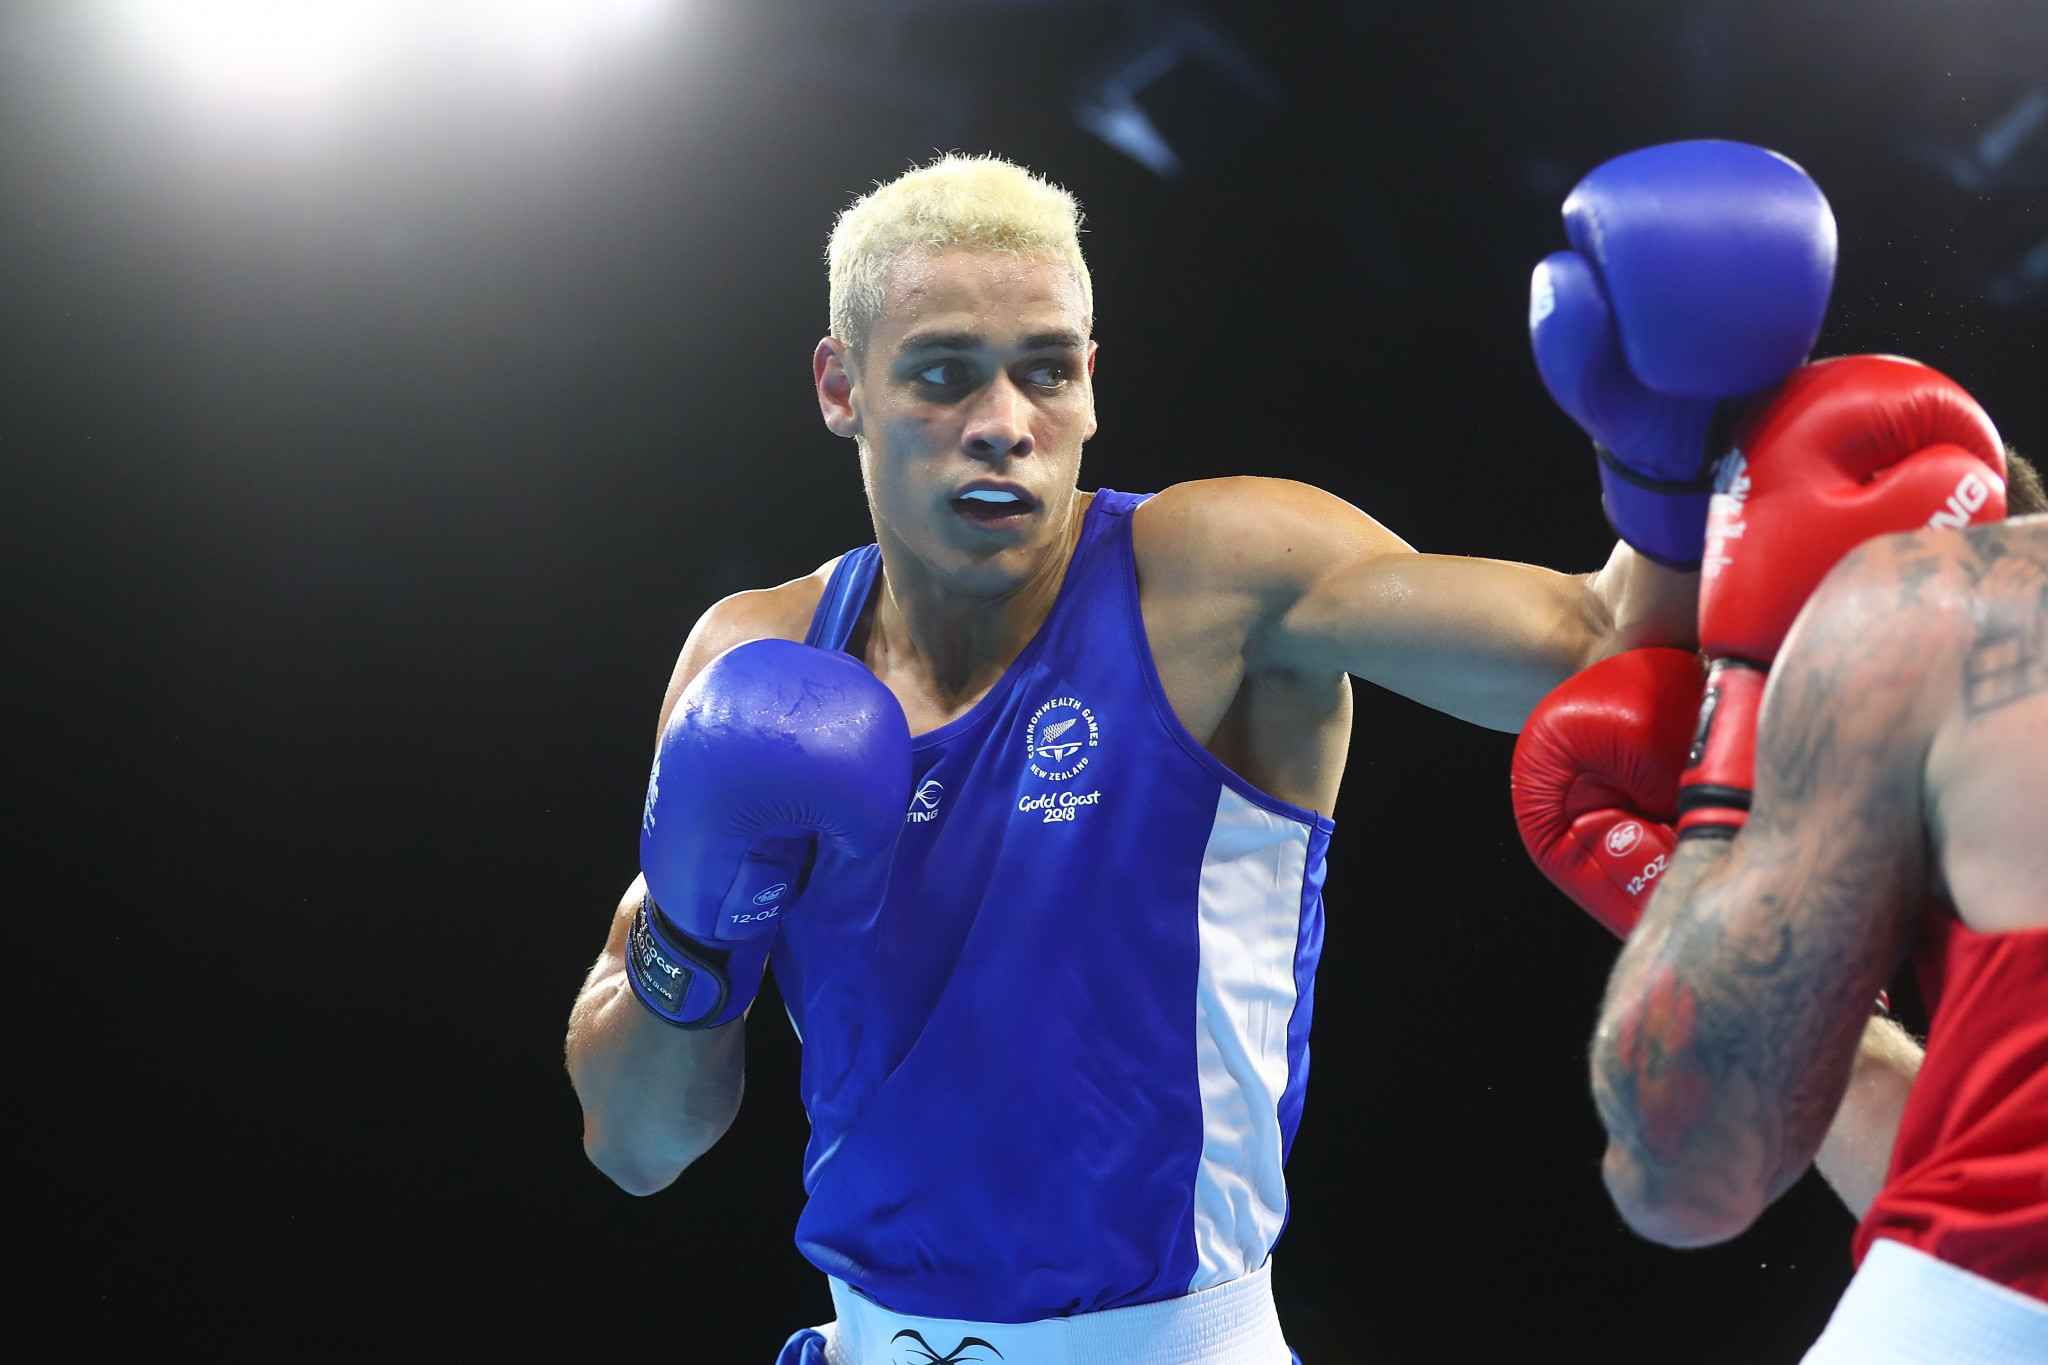 David Nyika moved up from light heavyweight to heavyweight for Gold Coast 2018 ©Getty Images